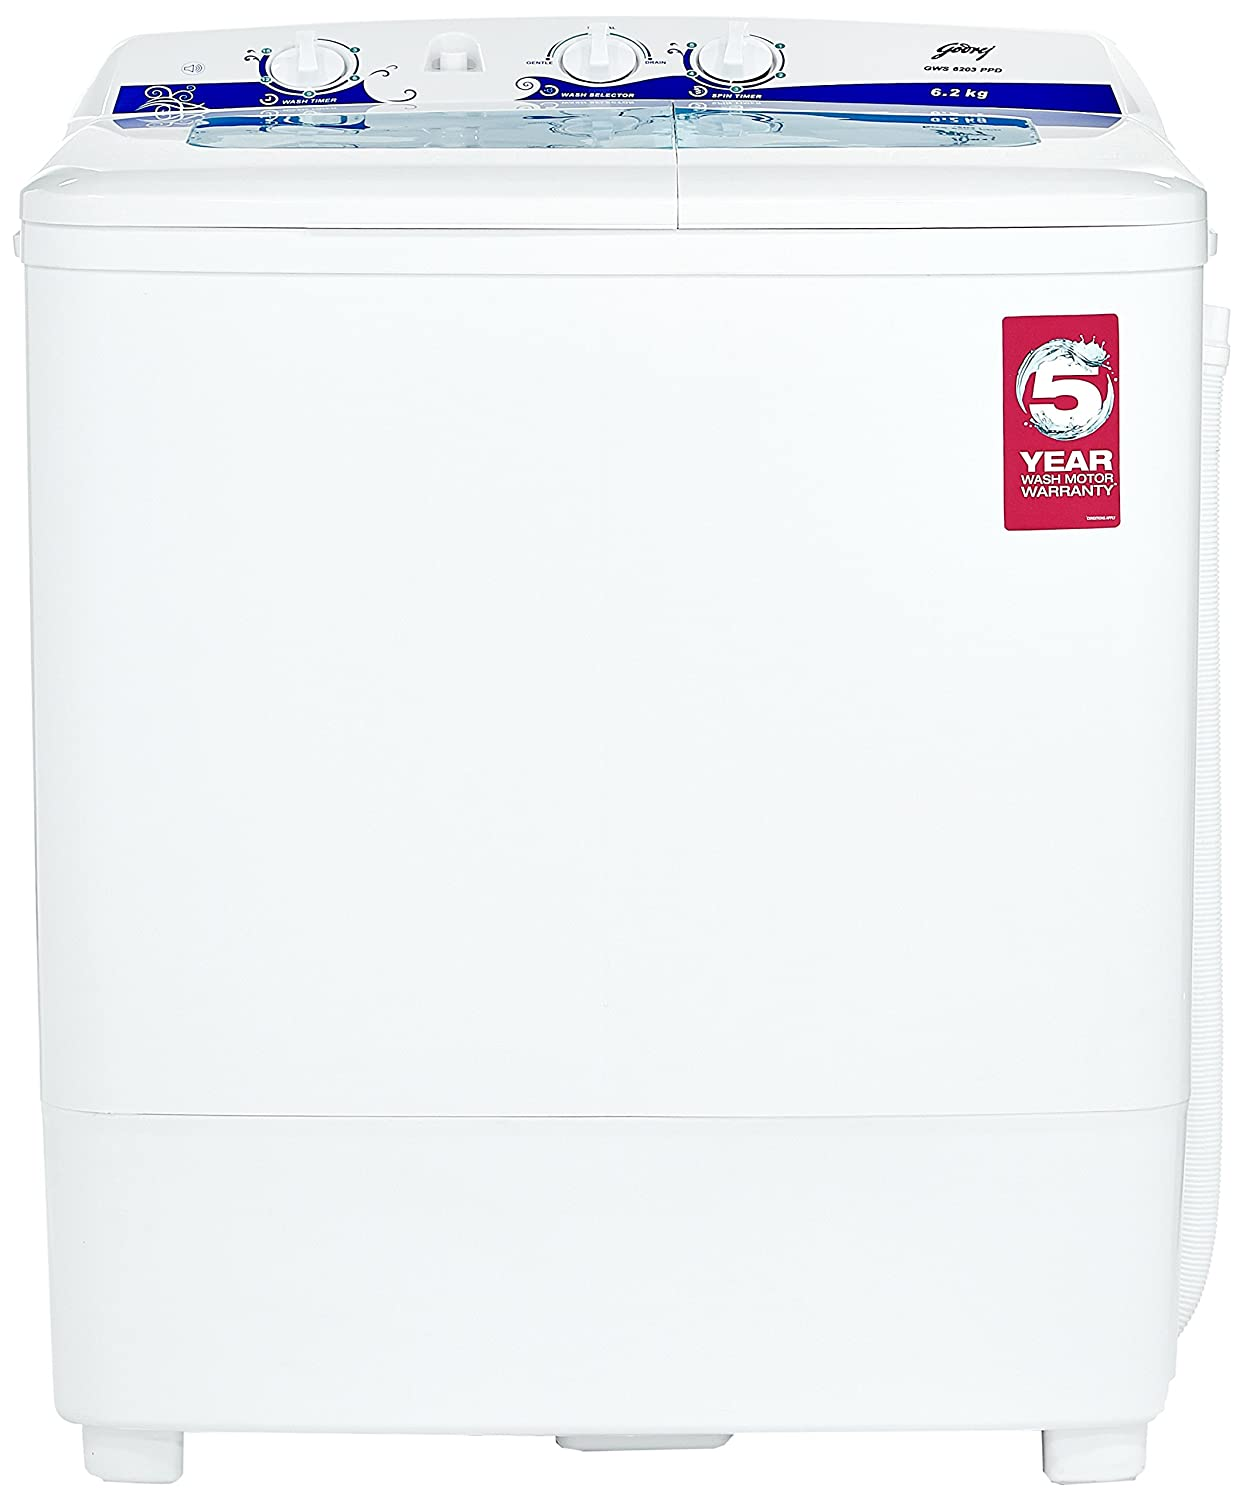 Godrej 62 Kg Semi Automatic Top Loading Washing Machine Gws 6203 Fully Wiring Diagram Ppd White And Blue Home Kitchen